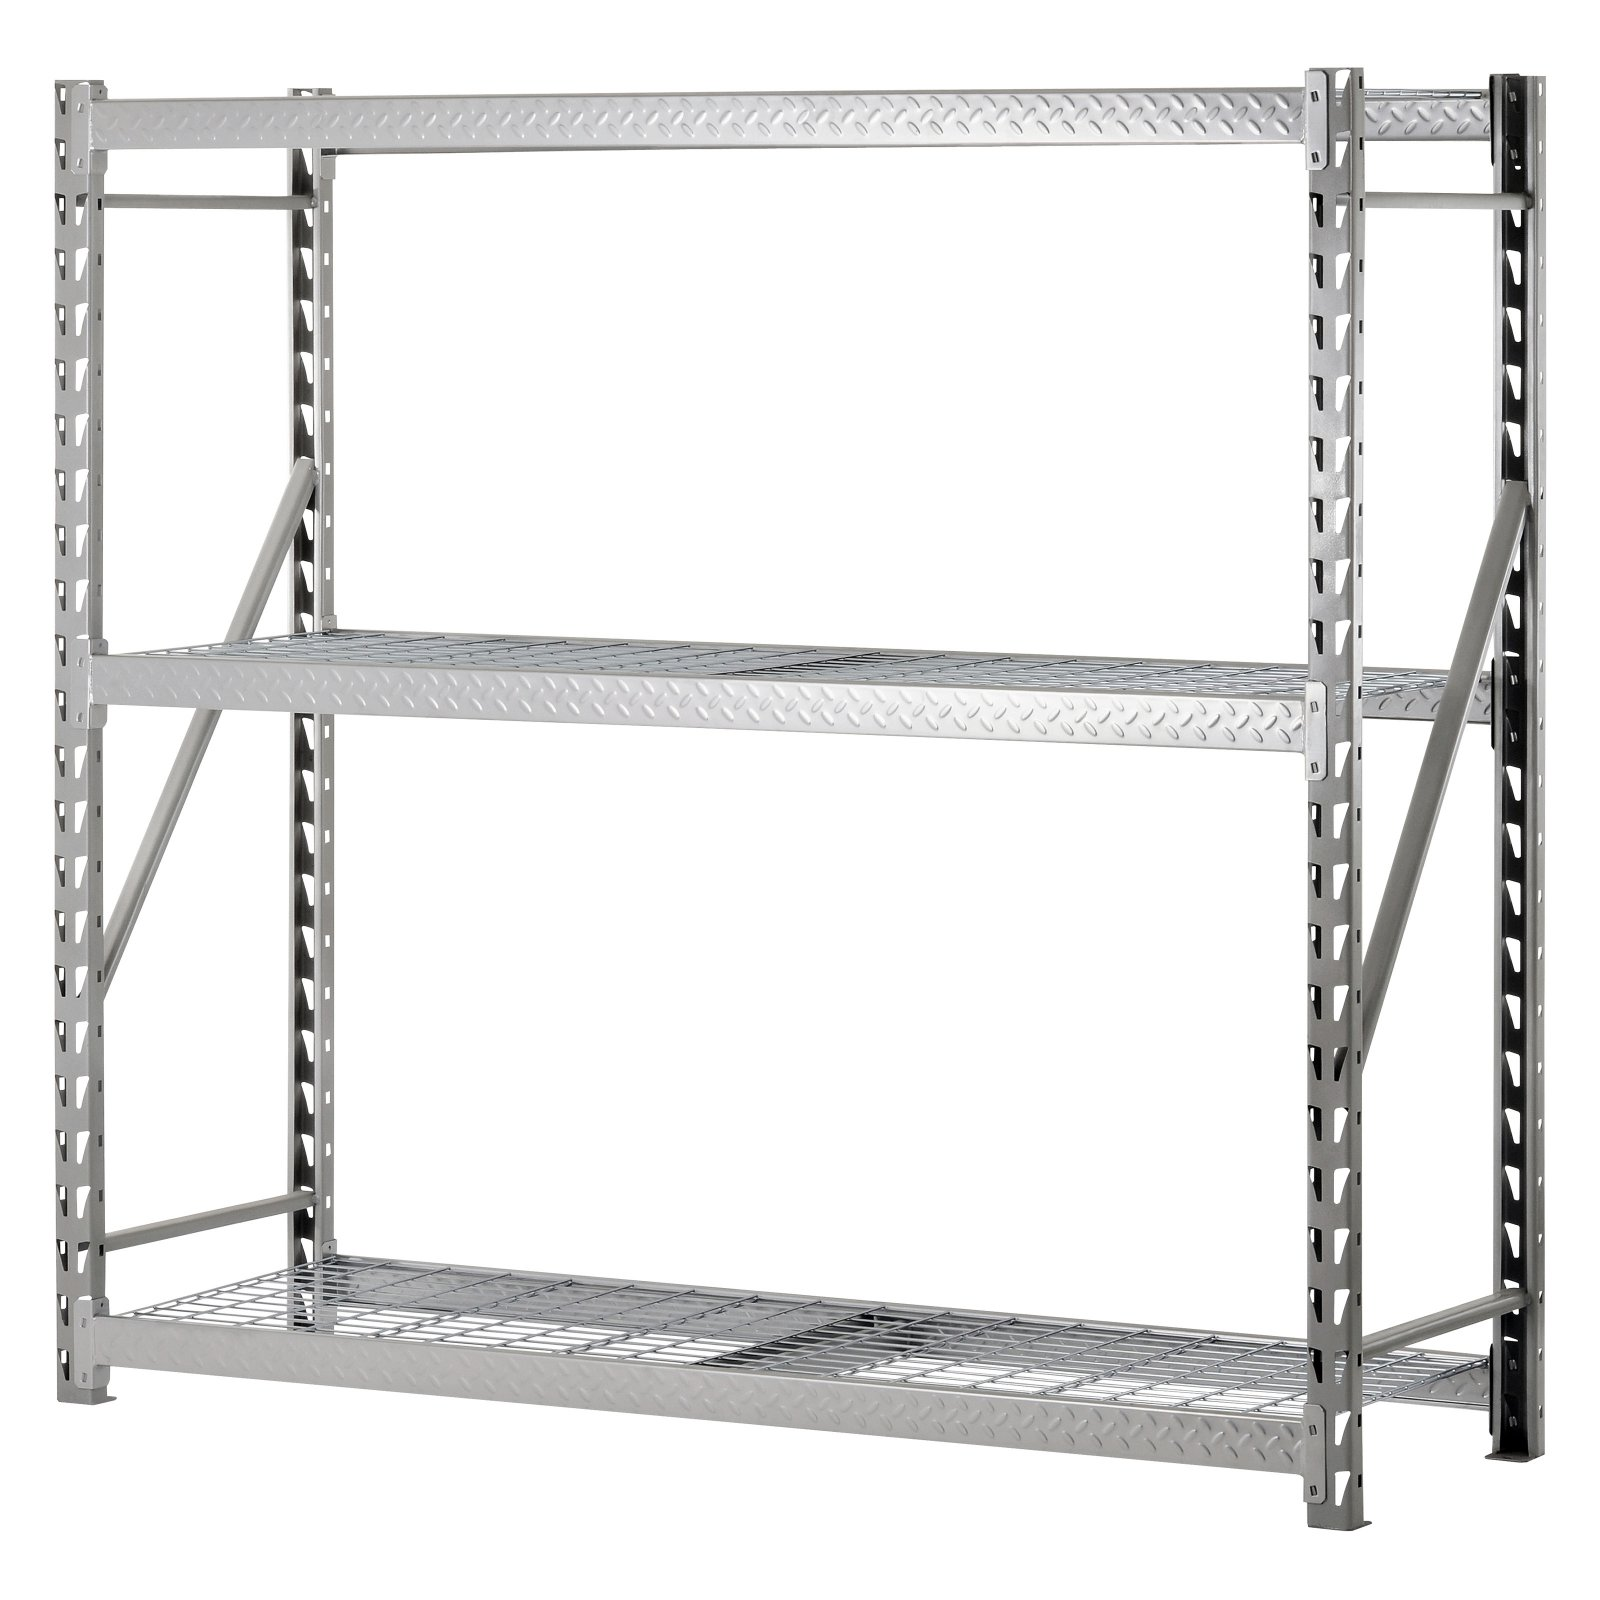 SANDUSKY LEE TP722472W3 Bulk Storage Rack, Steel, 3600 lb., Silver